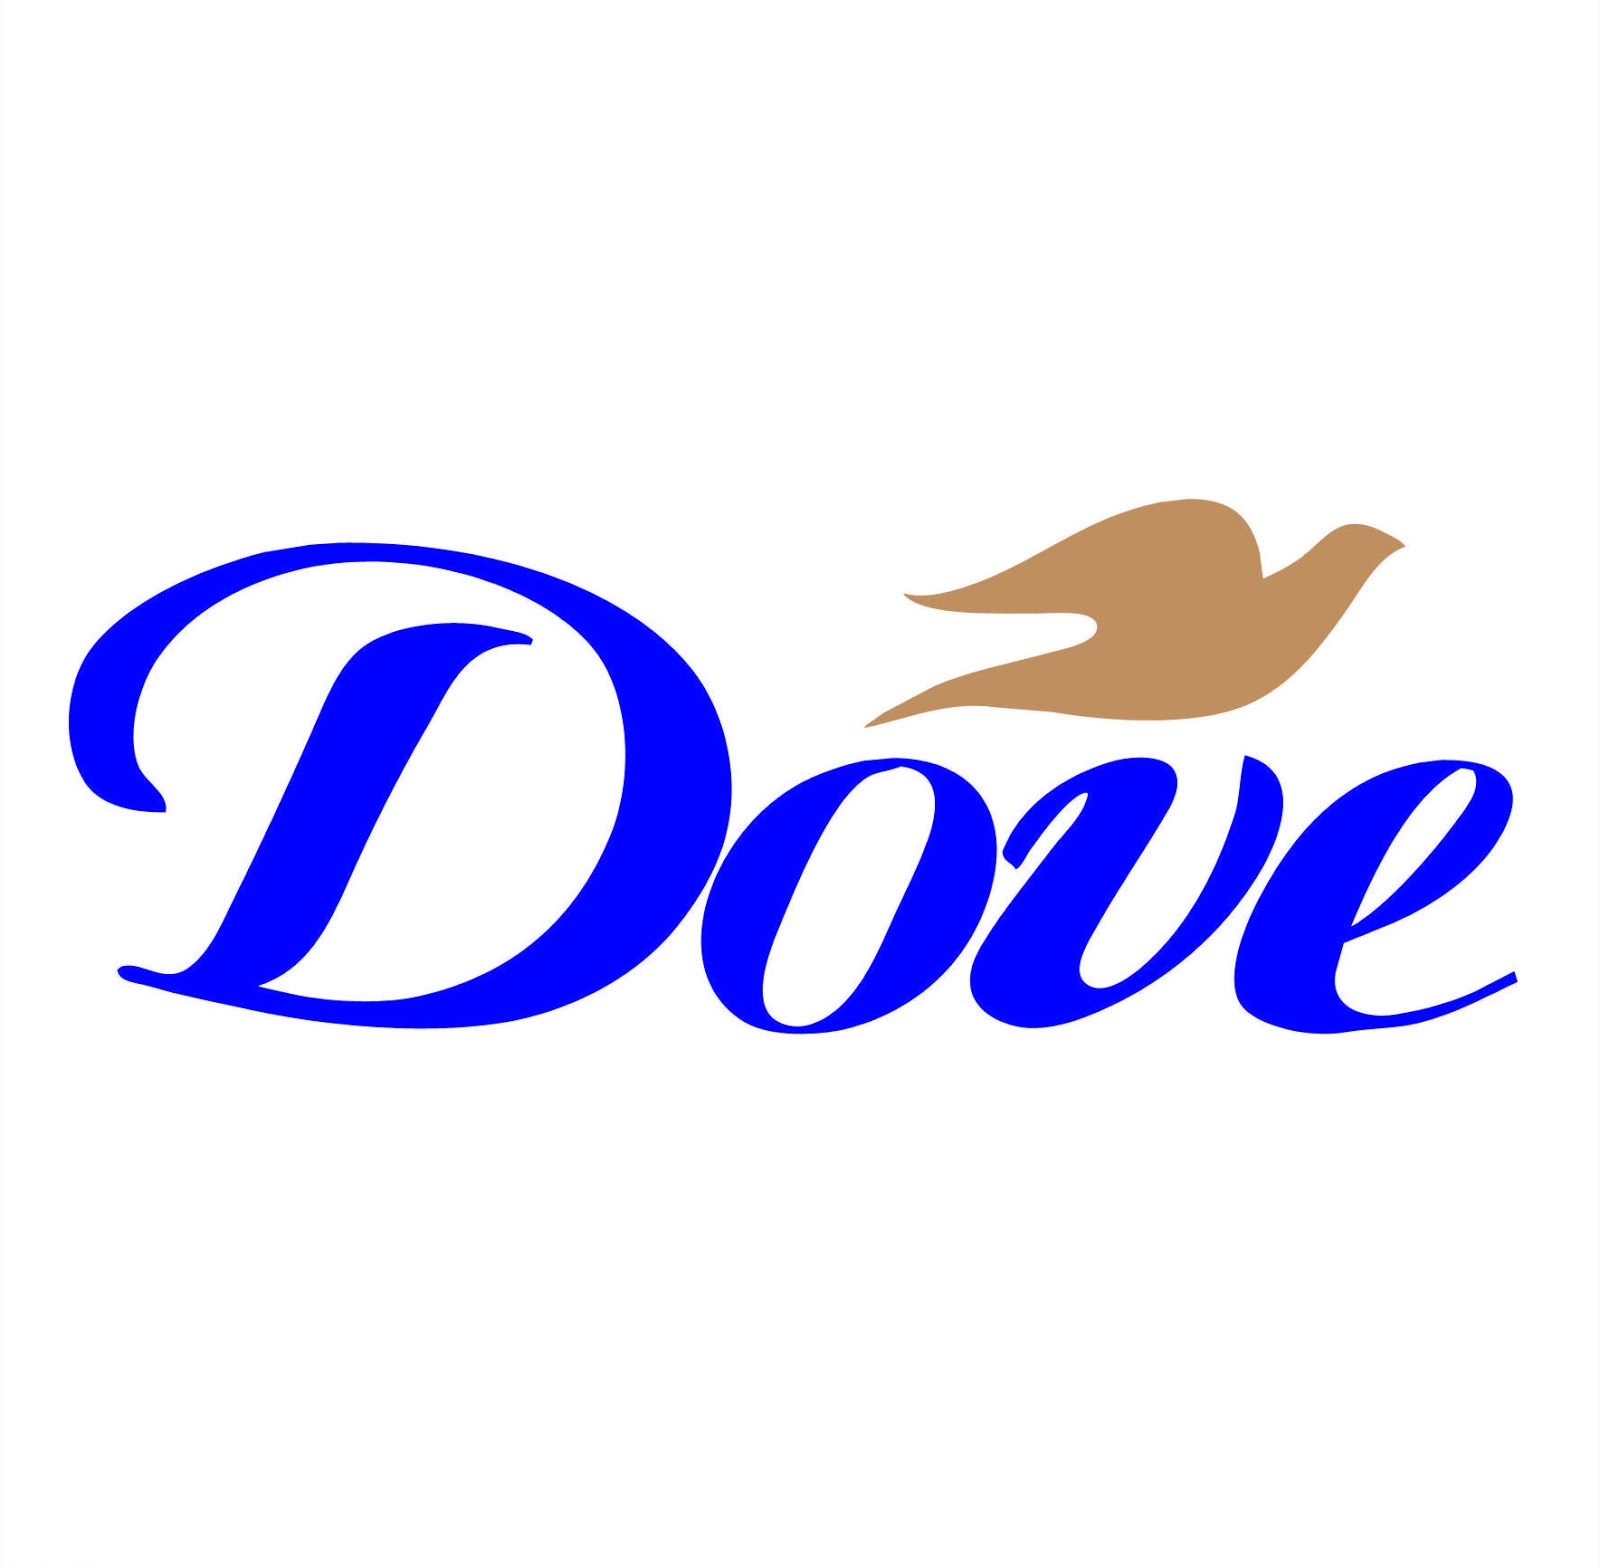 very popular logo: dove soap logo